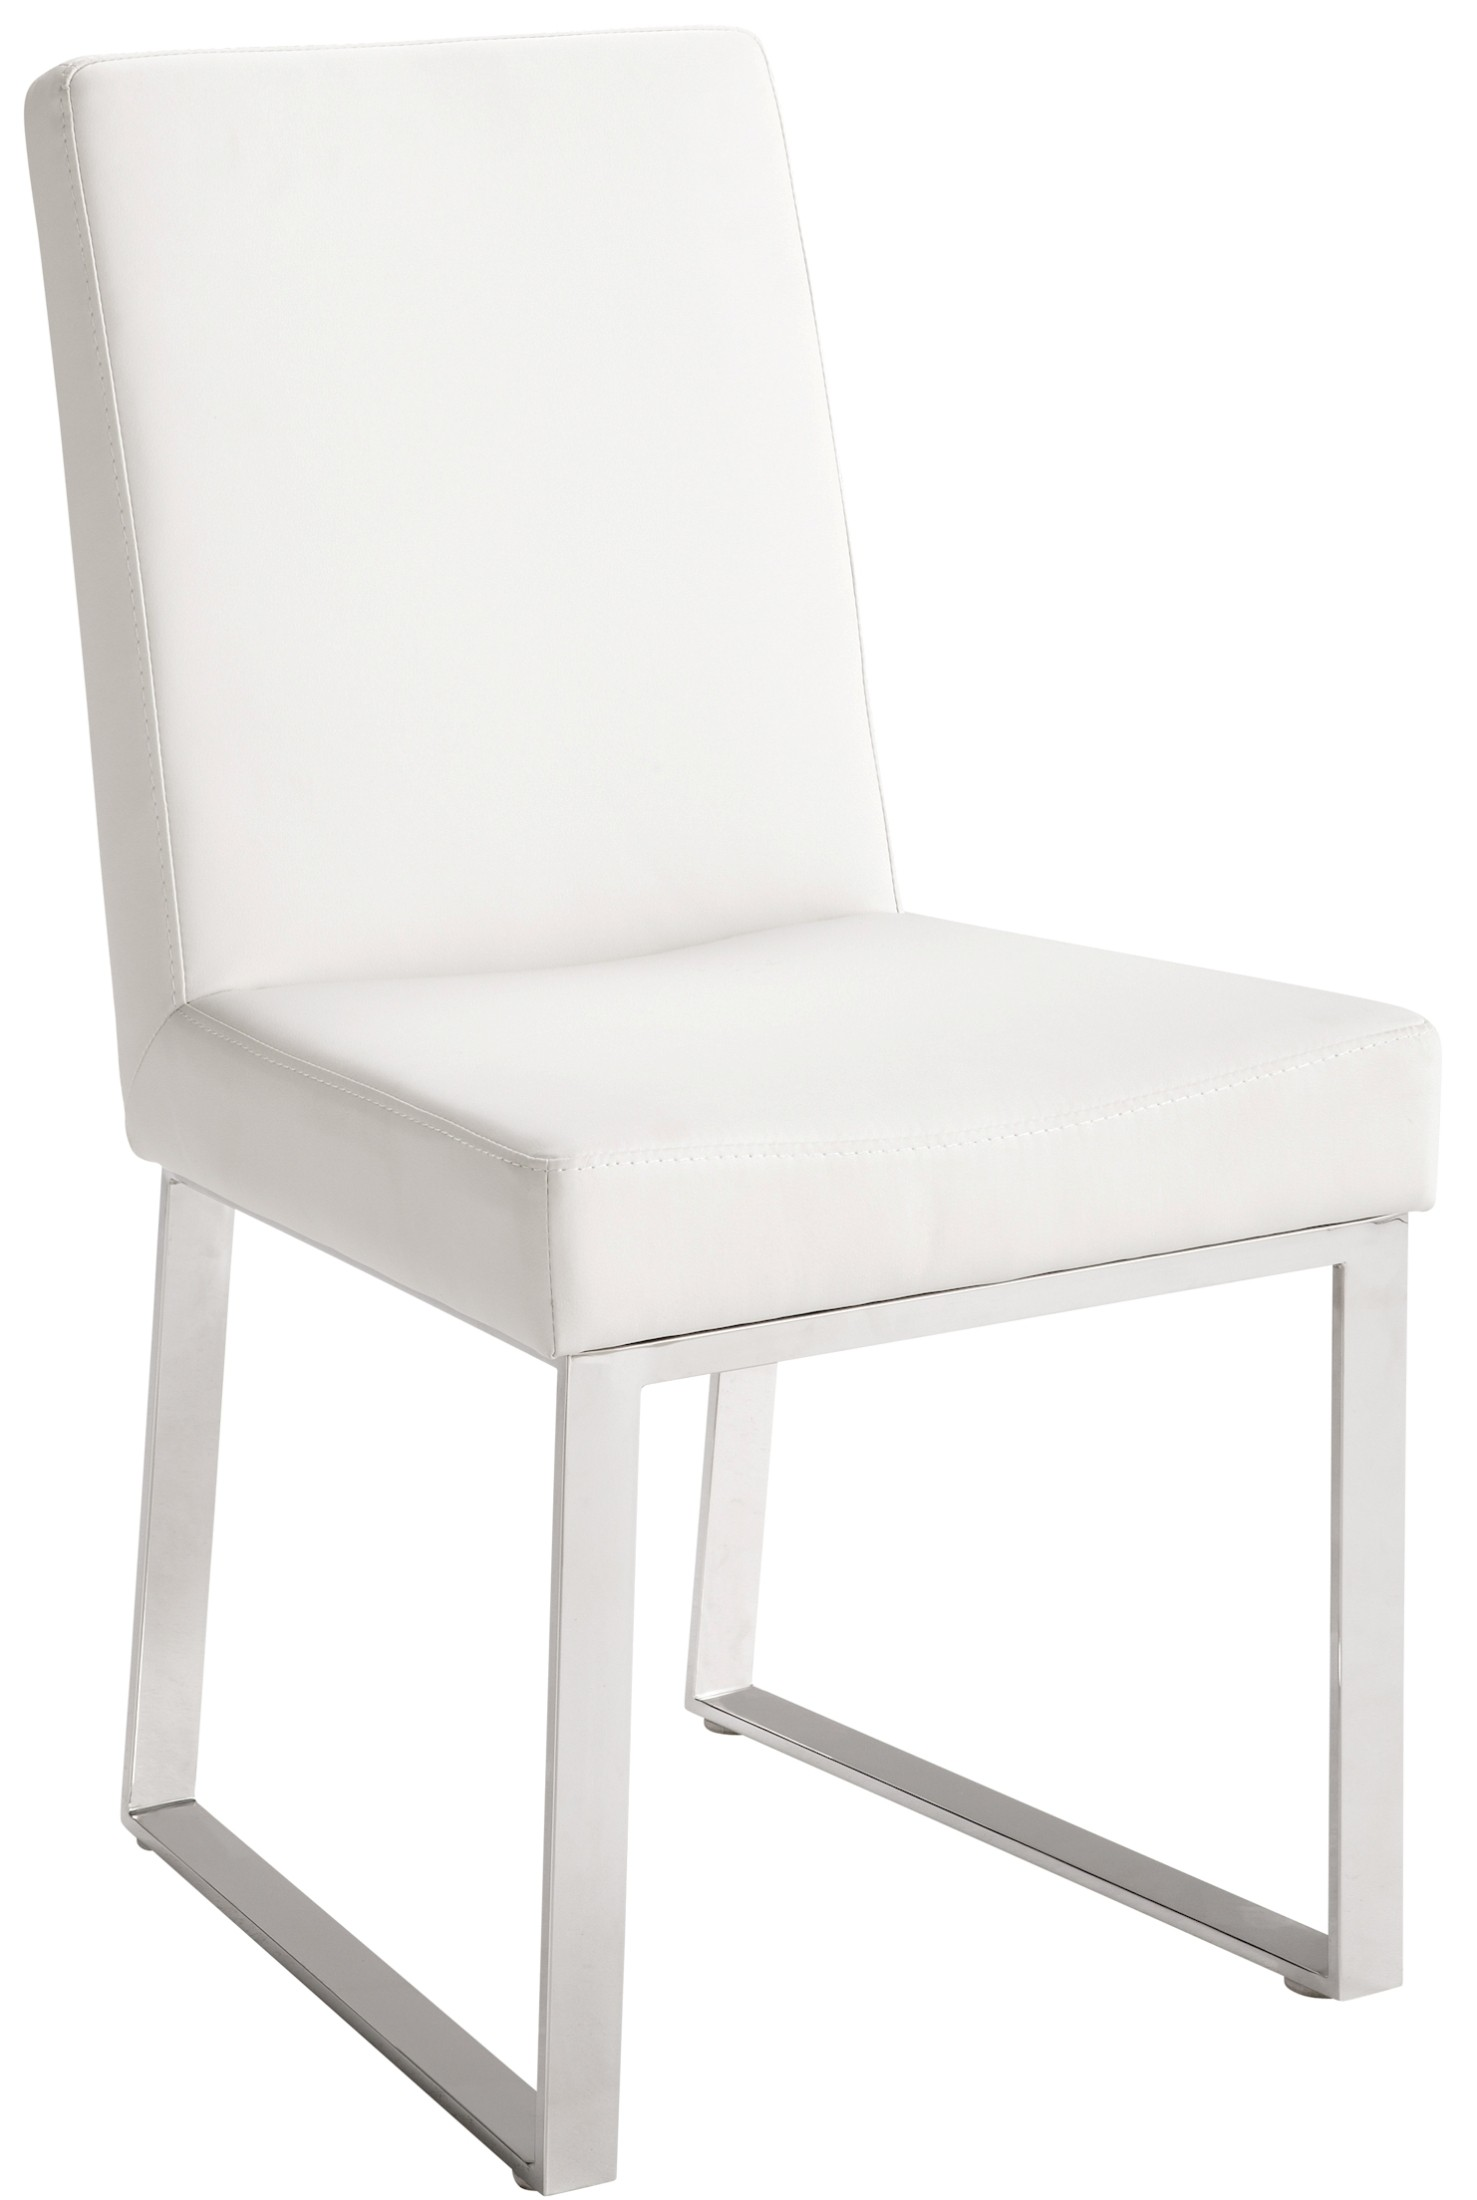 Zeus white leather dining chair set of 2 for White leather dining chairs